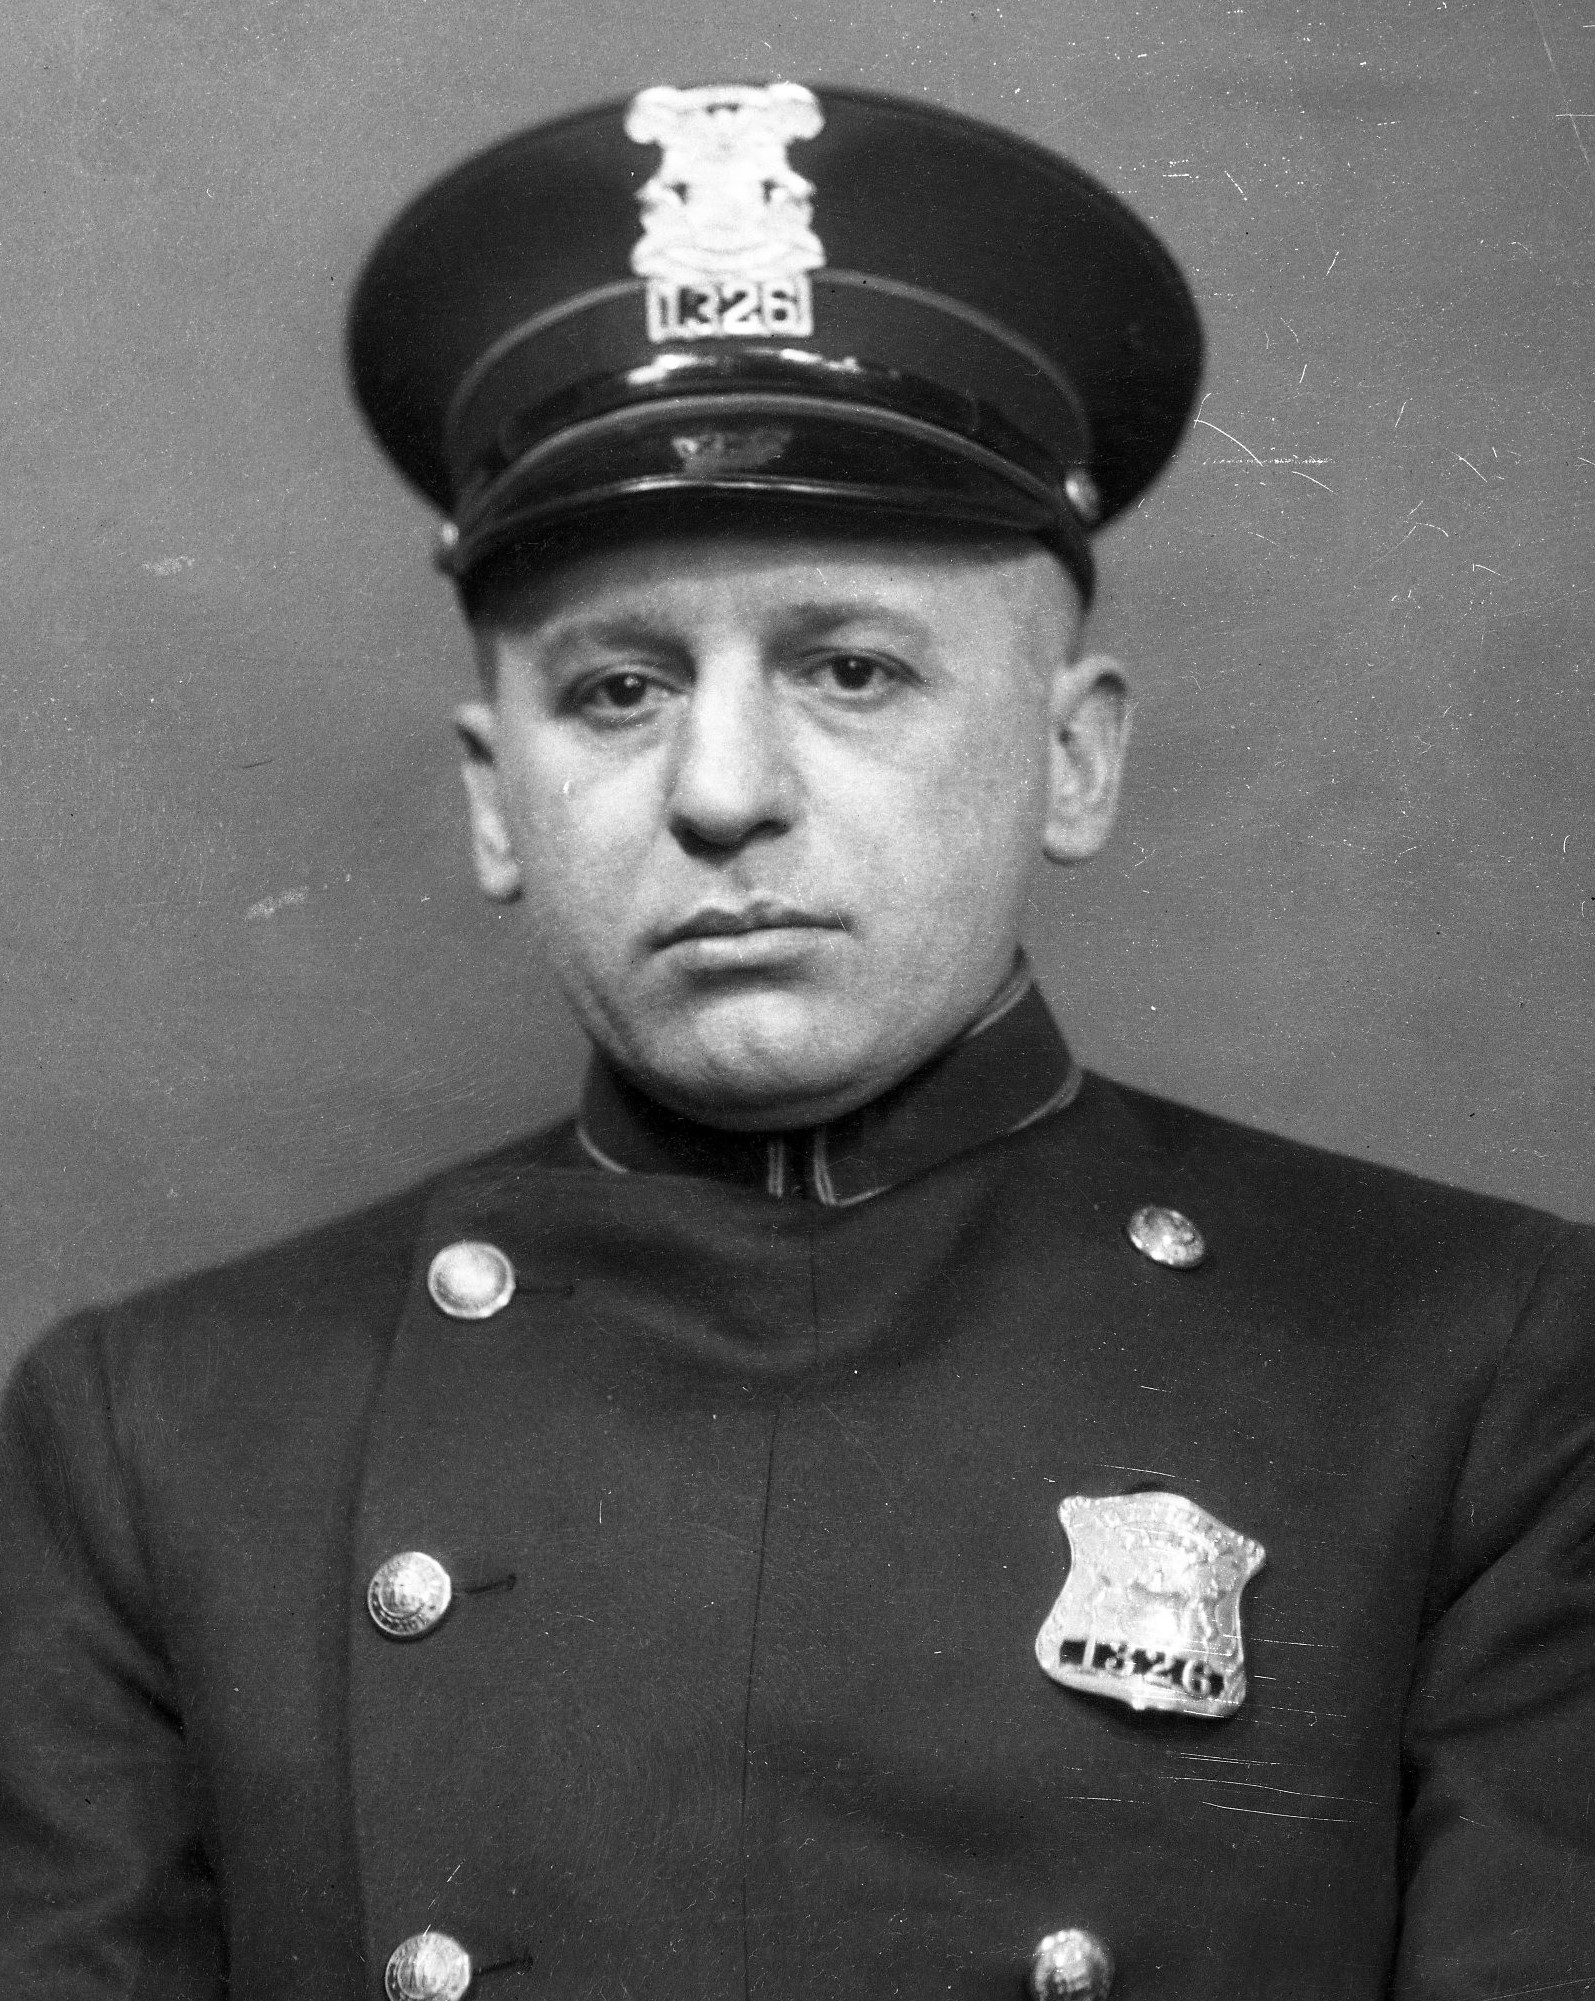 Police Officer William F. Hackenbruch | Detroit Police Department, Michigan